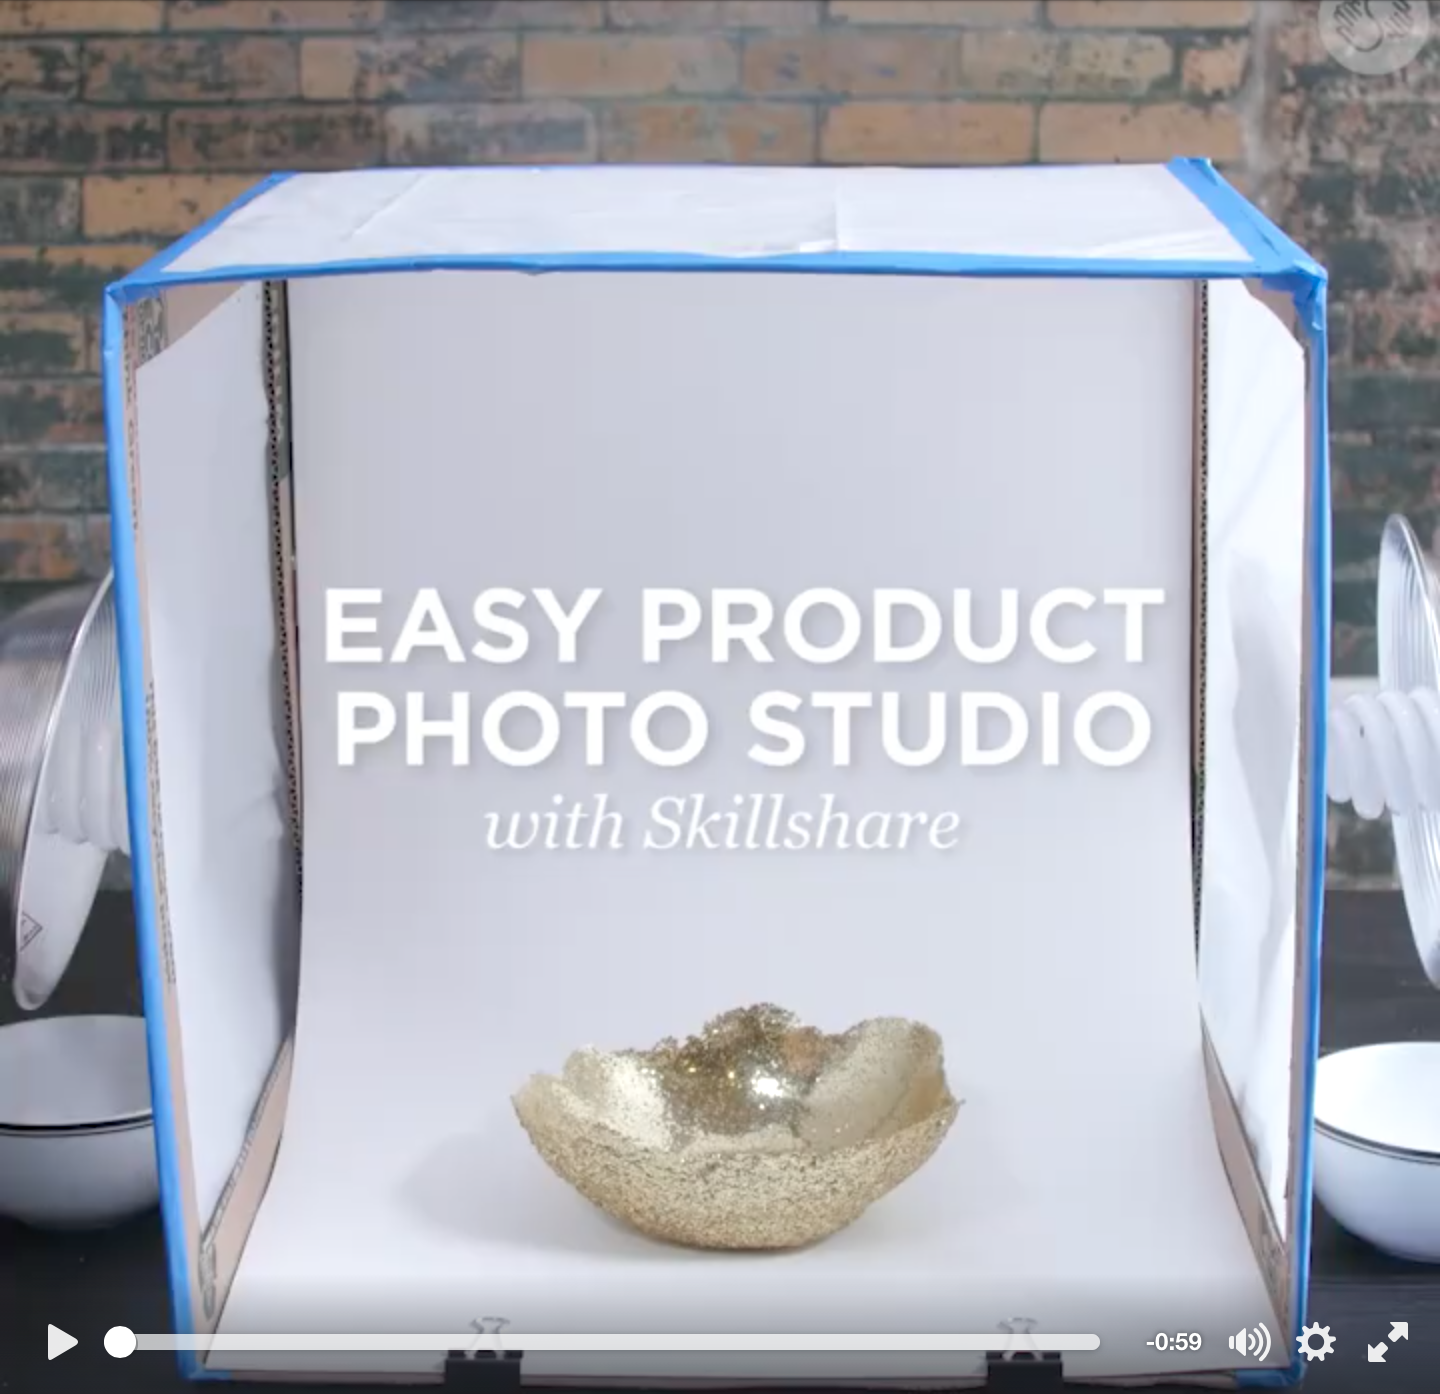 Easy Product photo Studio! Box, ruler, box cutter, tissue